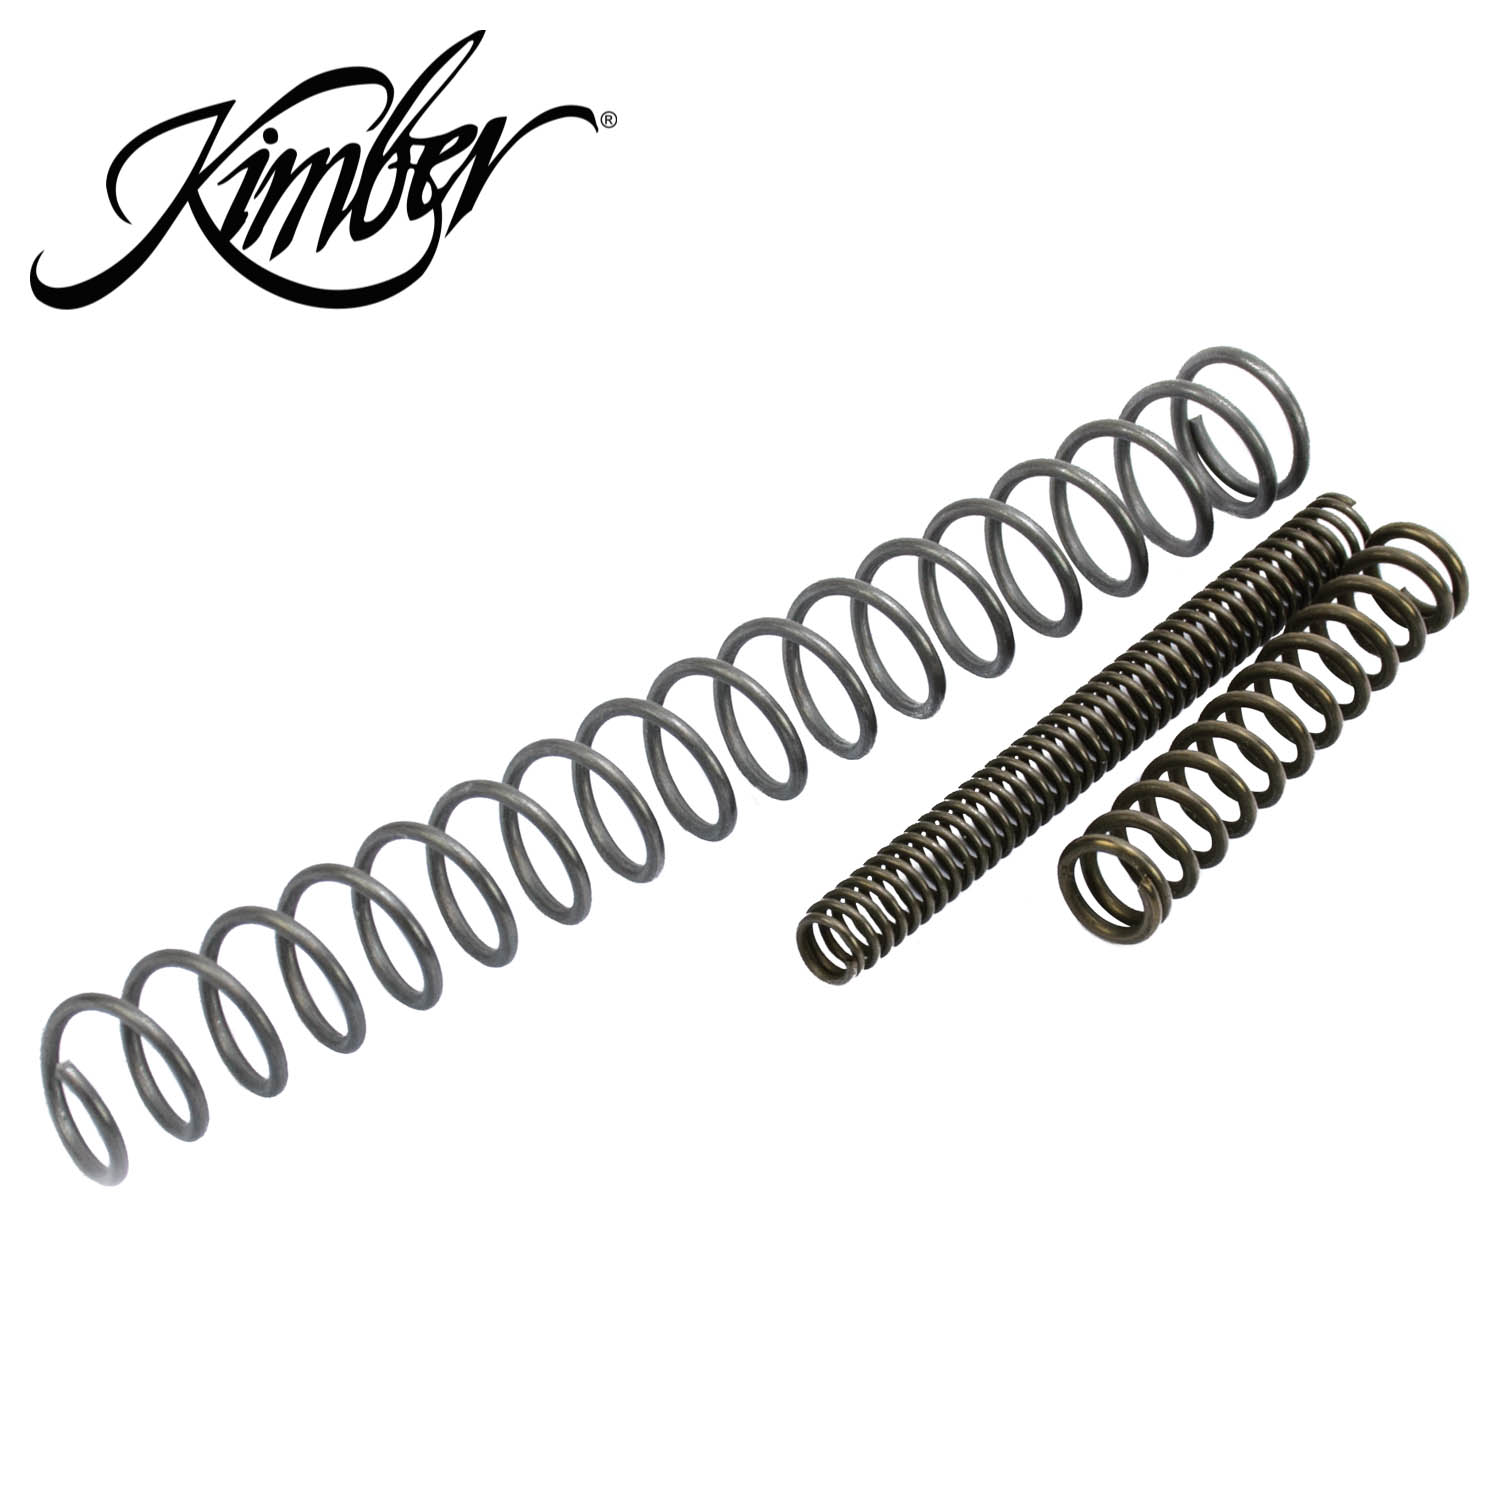 Kimber Compact 22 Lb Spring Tune Up Kit 45 Acp